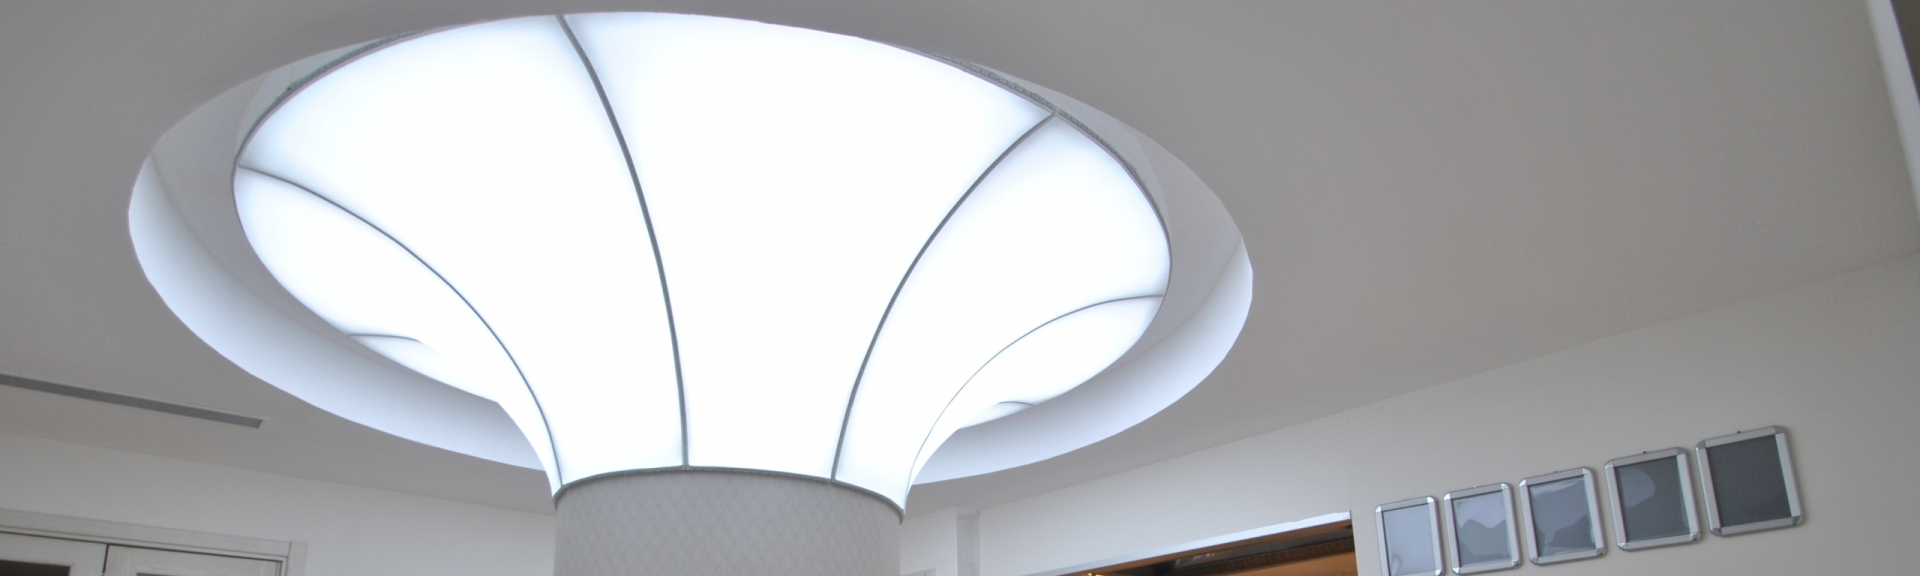 Stretched Ceiling Dubai, Stretch Ceilings in Dubai-UAE , Barrisol Ceiling Dubai, Stretch ceiling , Stretch ceiling PVC, barrisol stretch ceiling, barrisol stretch ceiling dubai, barrisol stretch ceiling installation, barrisol stretch ceiling detail, barri